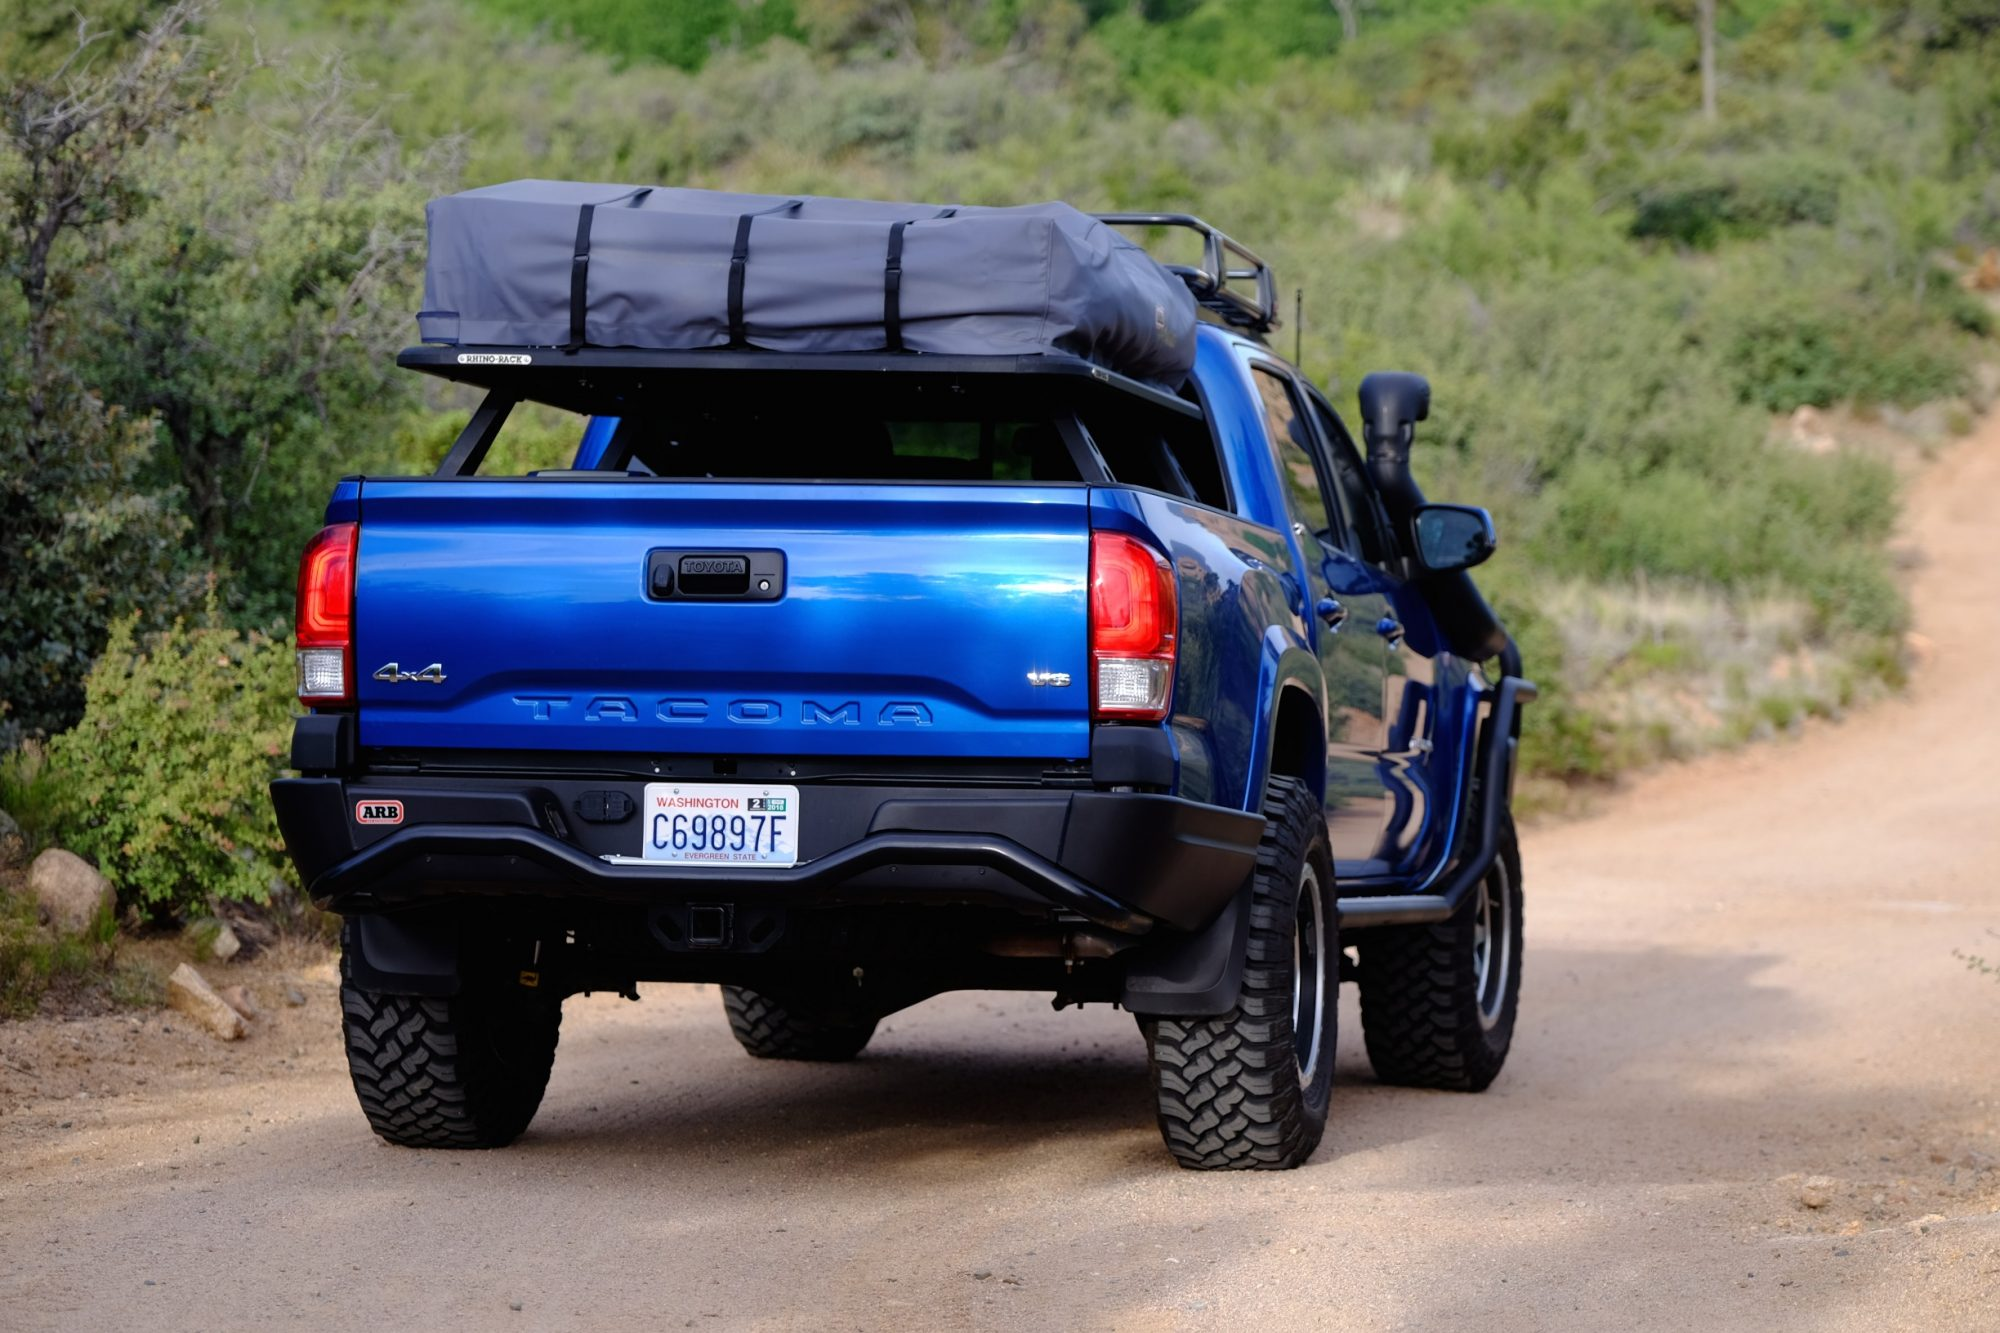 As handsome as the truck is its beauty is not skin deep. Hidden within are more ARB accessories to bolster the already superb off-road proficiency of the ... & Featured Vehicle: ARB 2016 Toyota Tacoma u2013 Expedition Portal